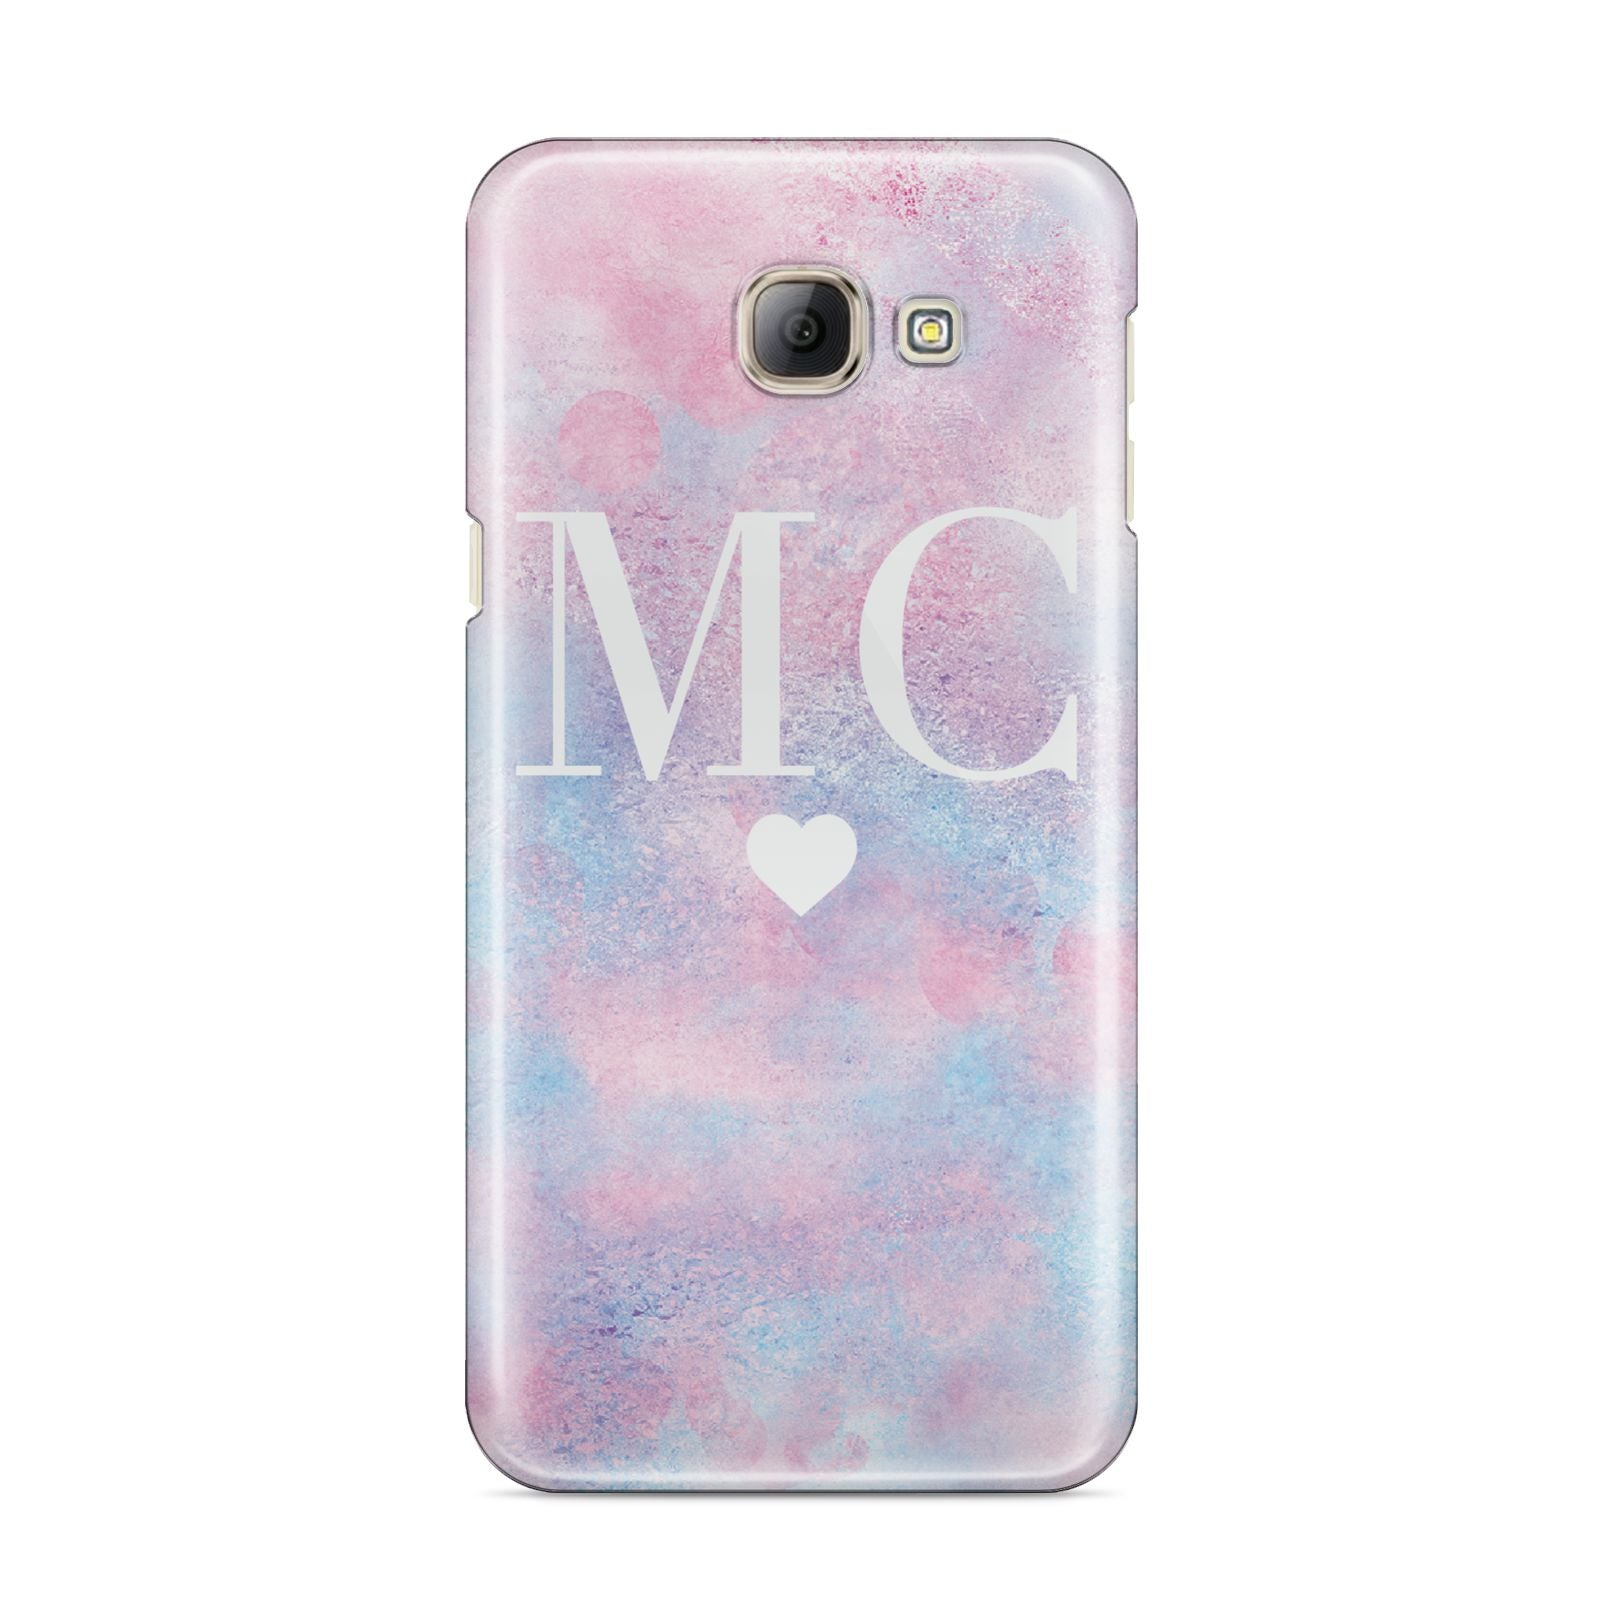 Personalised Cotton Candy Marble Initials Samsung Galaxy A8 2016 Case